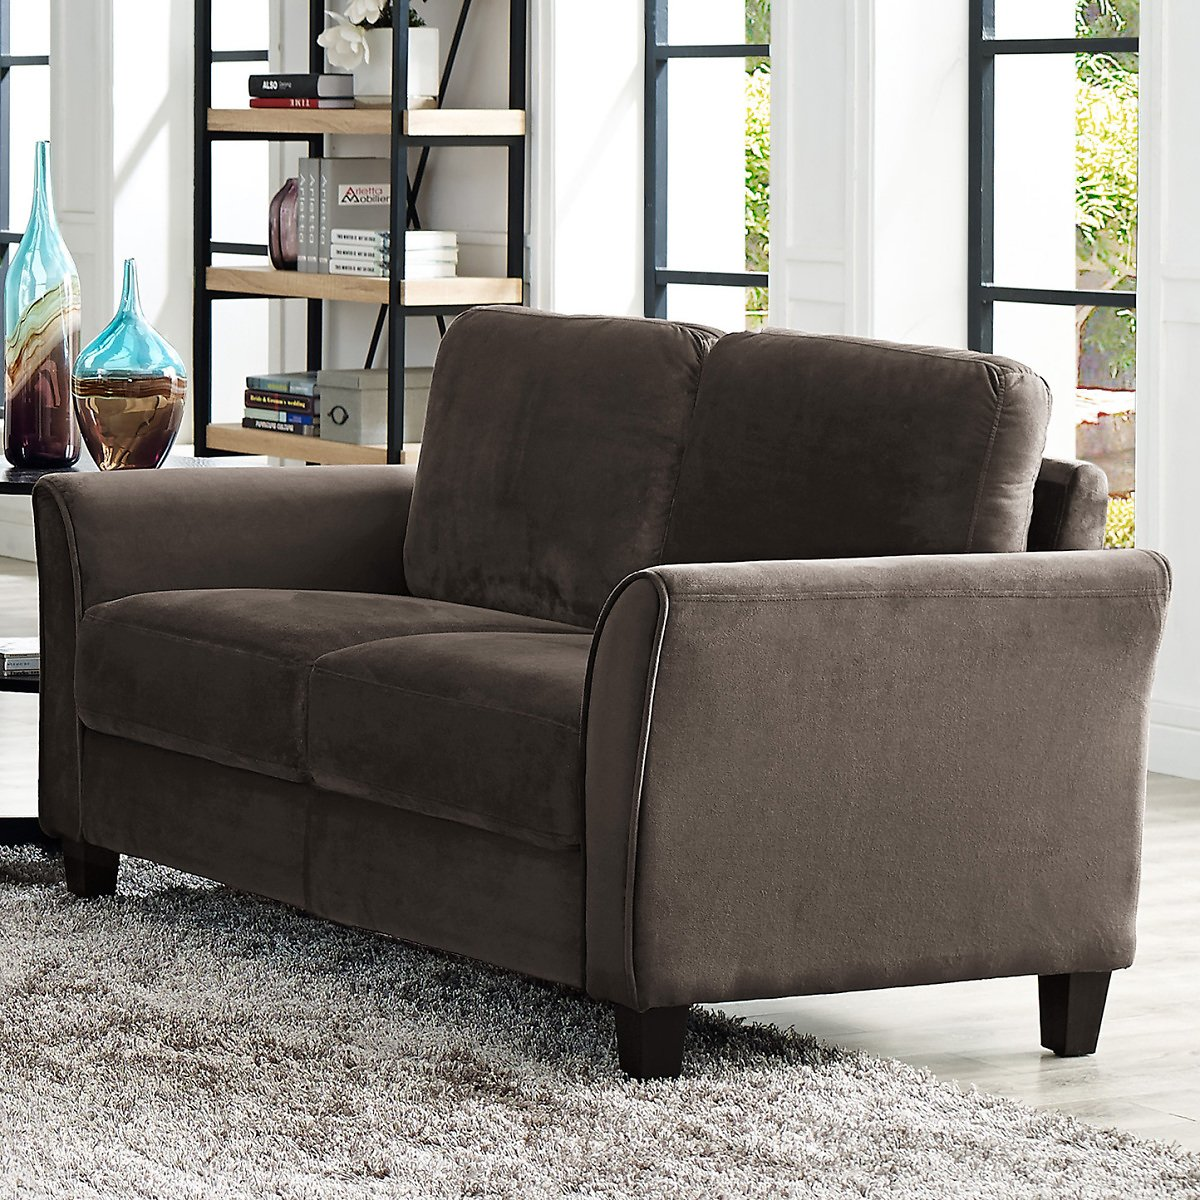 LifeStyle Solutions Alexa Rolled-Arm Loveseat (2 Colors) + Free Shipping